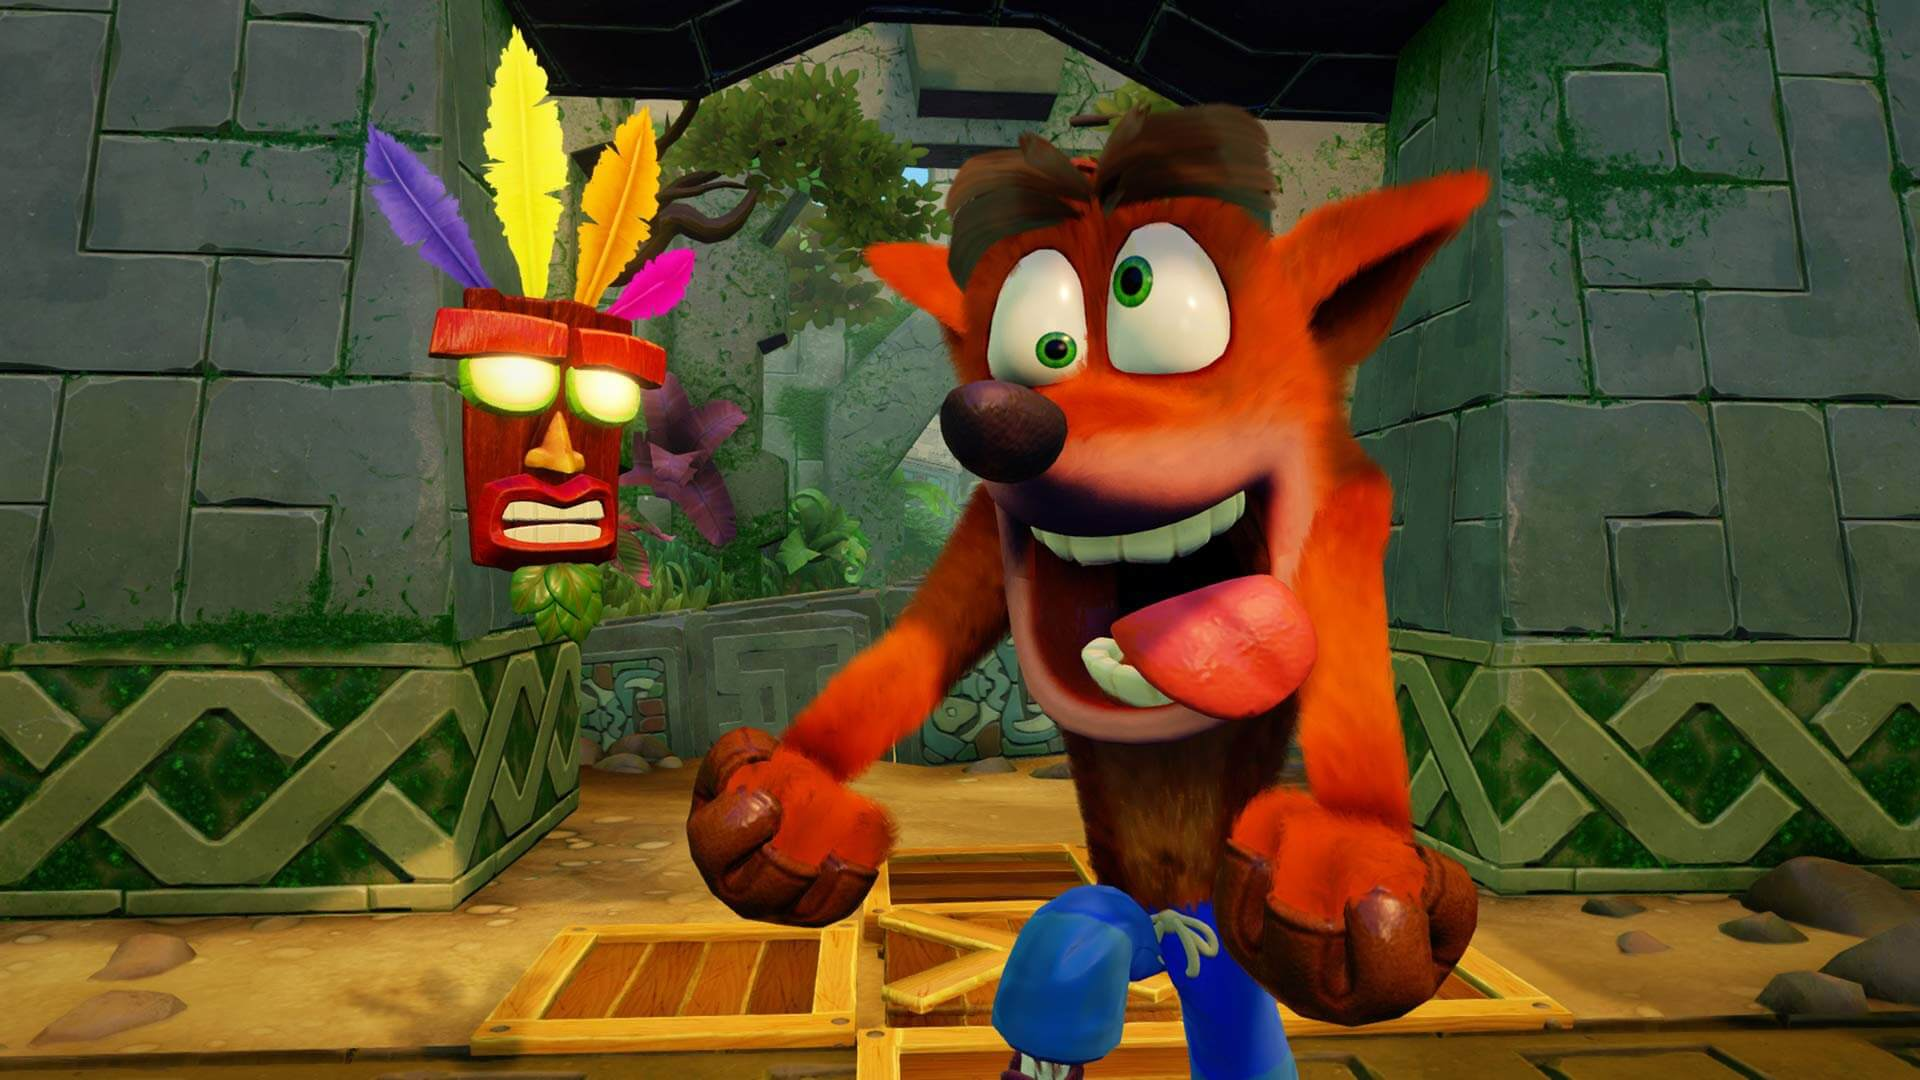 Rumors - Crash Bandicoot Could Be The New Fighter In Super Smash Bros?